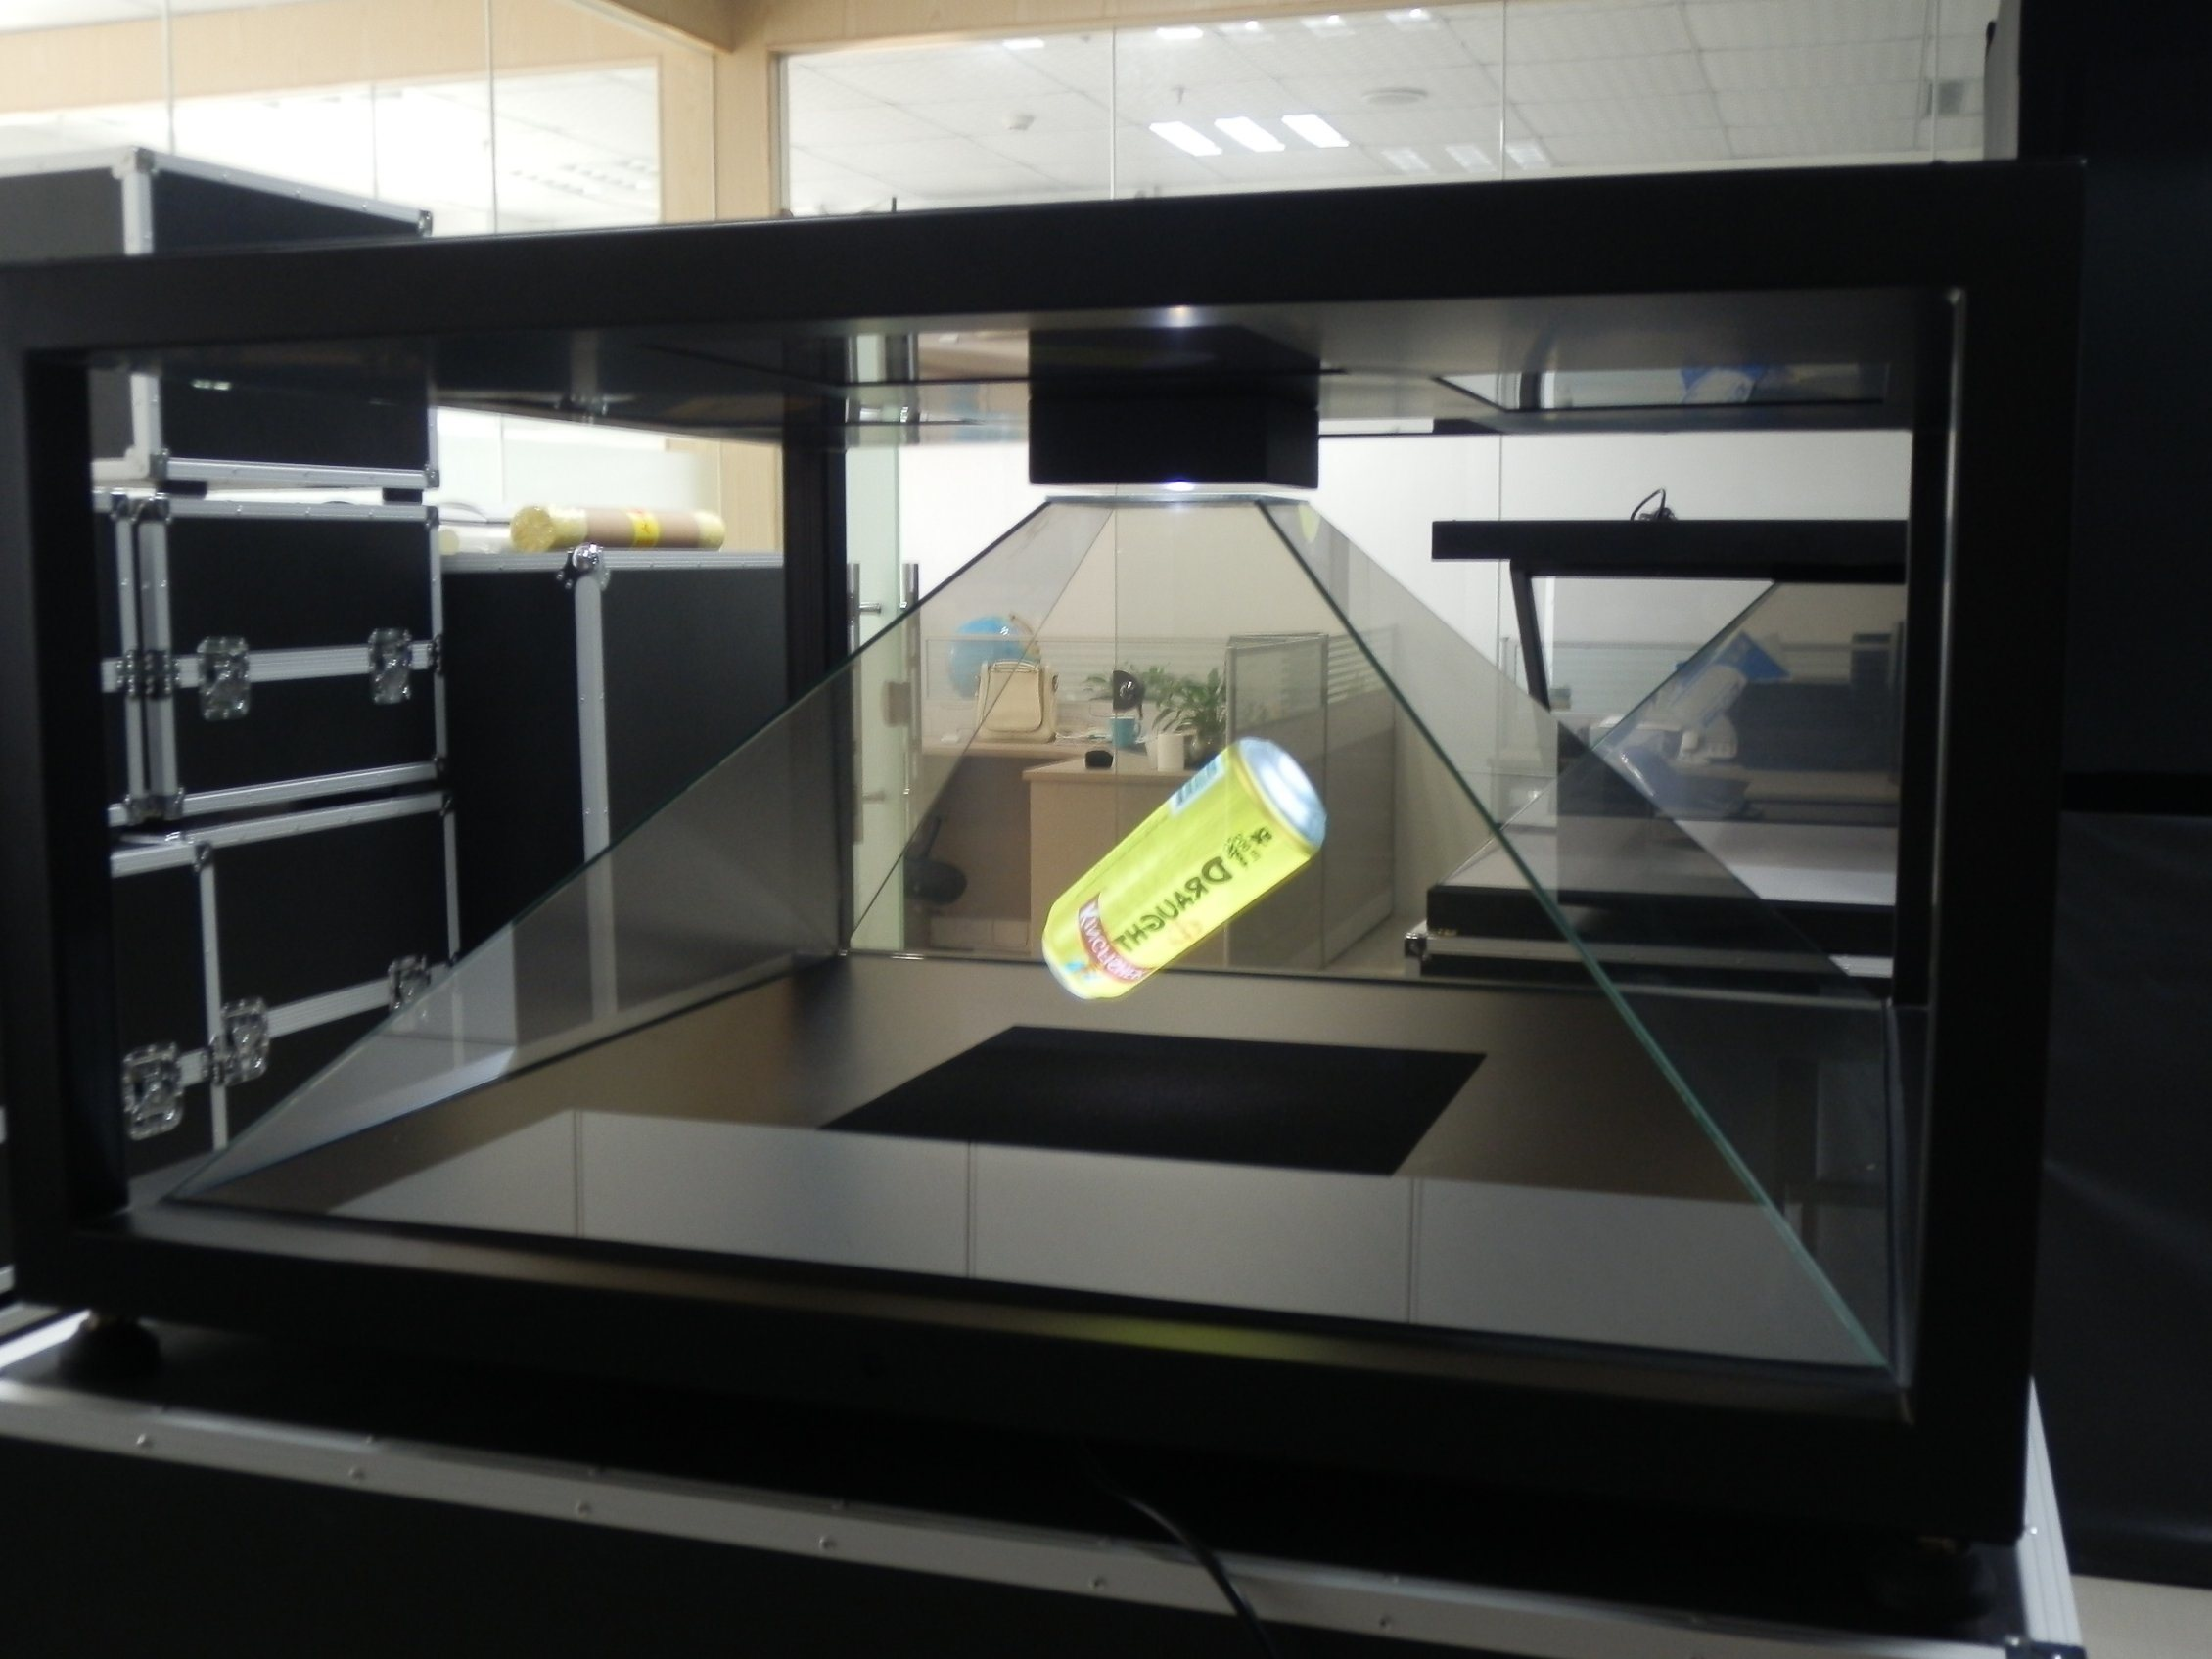 Holo Box, Clear Glass Display Showcase with Light, Hologram Device